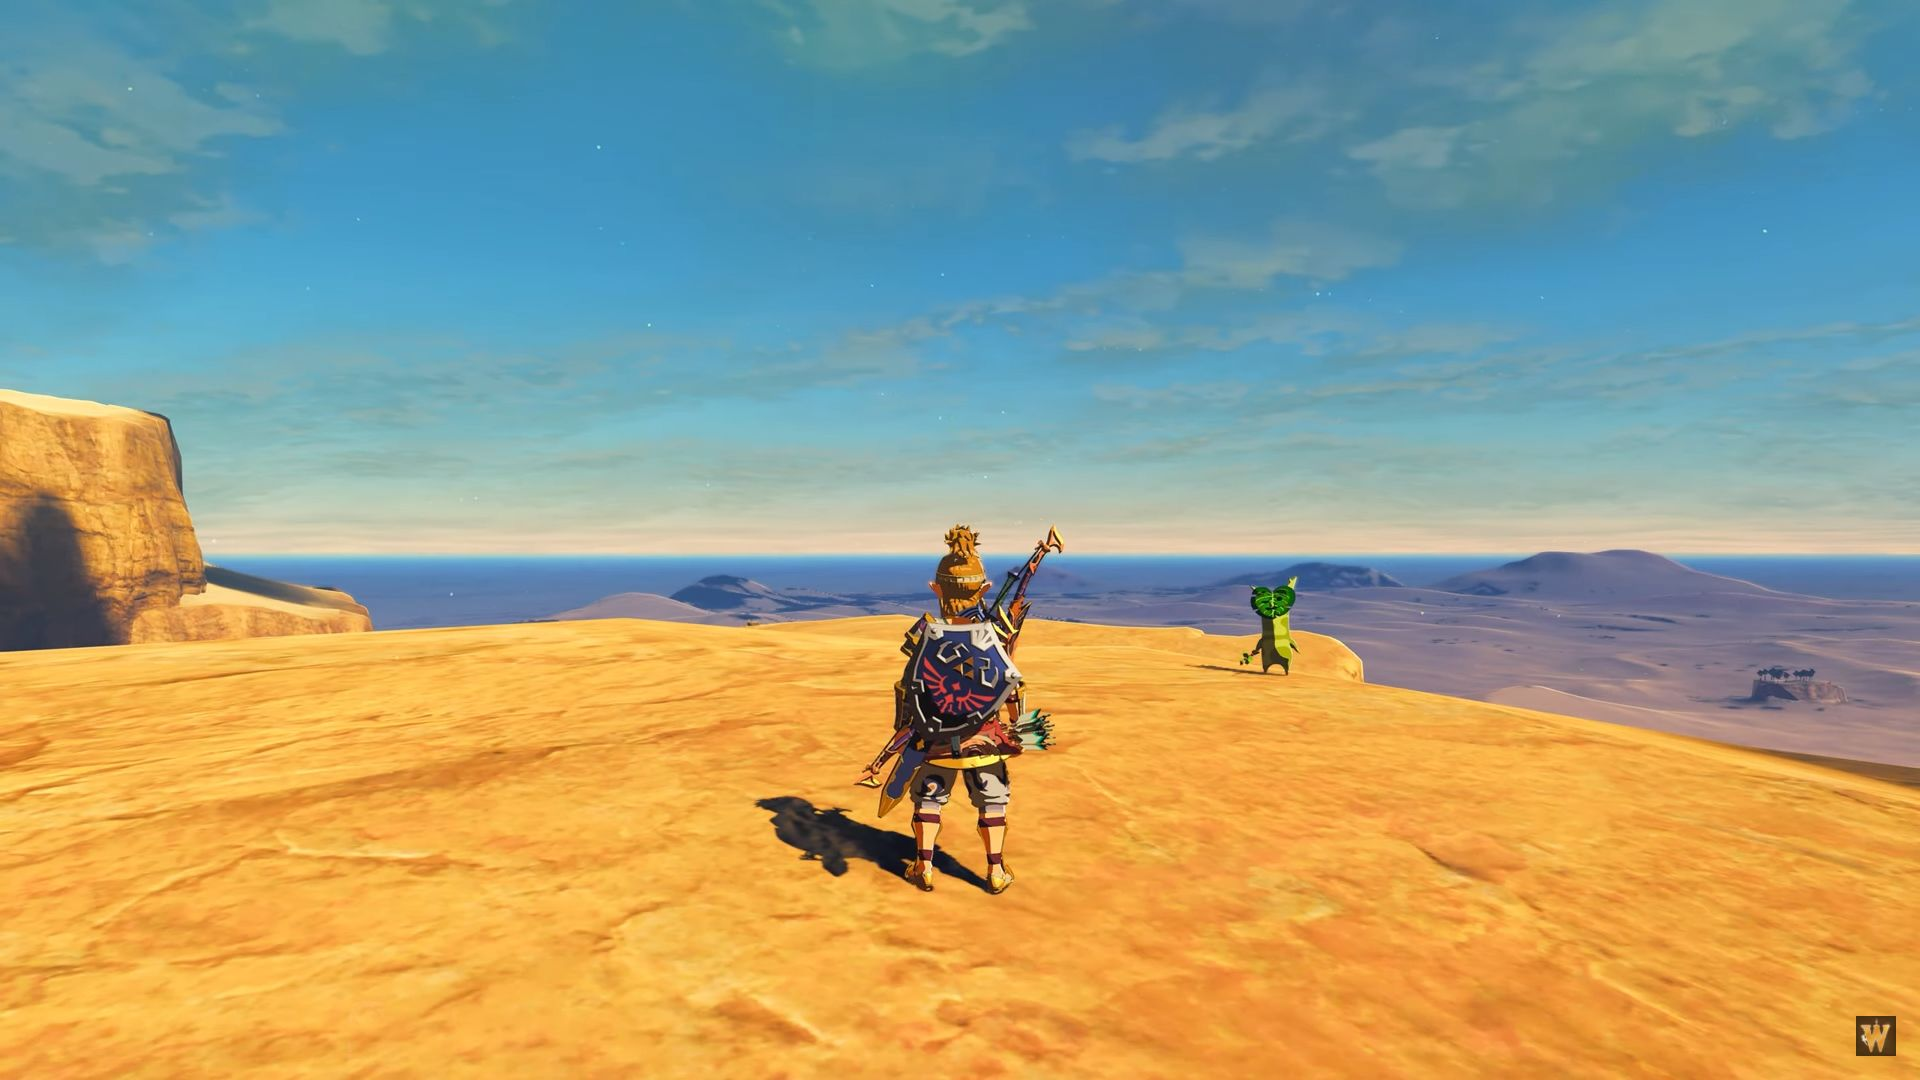 Second Wind is a Breath of the Wild mod the size of an expansion currently in development